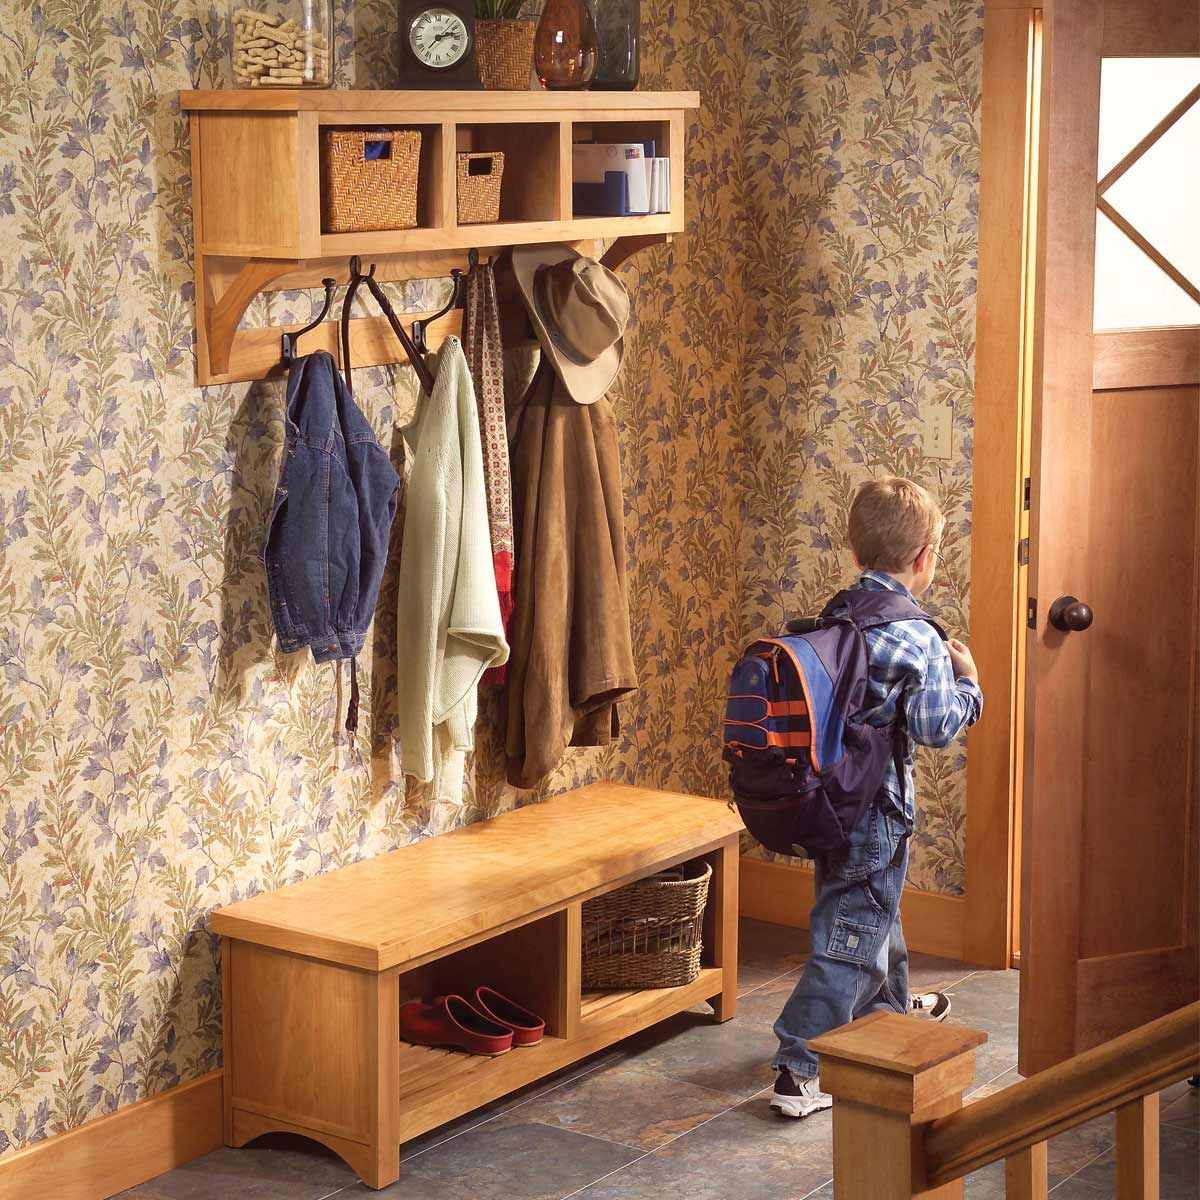 How To Build An Entryway Coat Rack And Storage Bench Entryway Coat Rack Woodworking Face Frame Cabinets